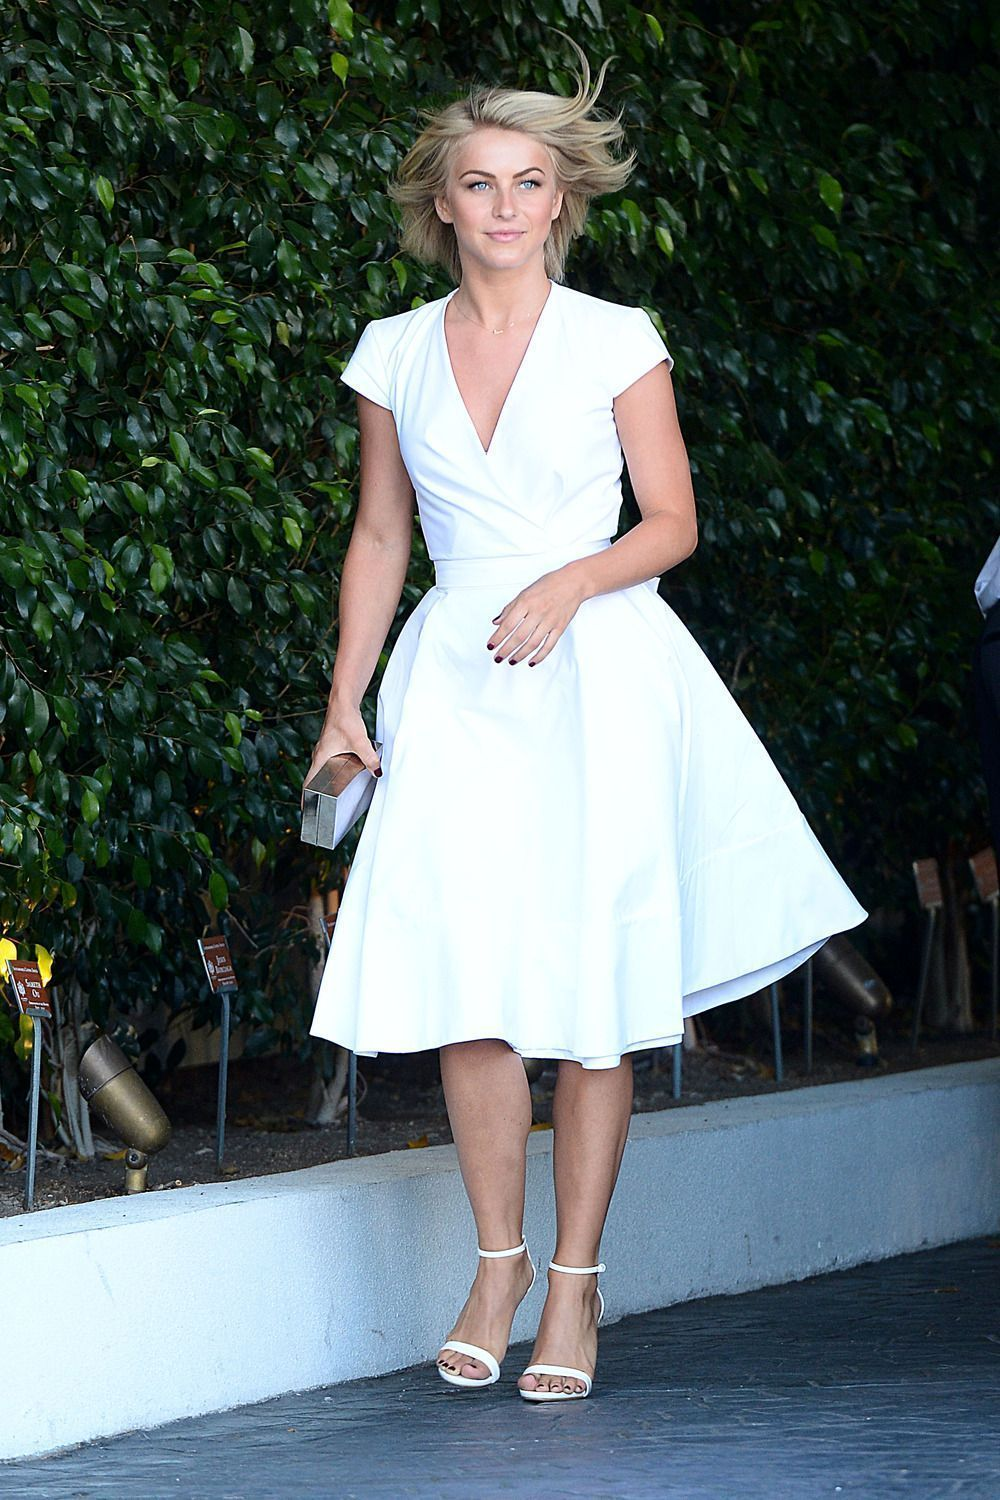 Julianne Hough in white #juliannehoughstyle Julianne Hough in white #juliannehoughstyle Julianne Hough in white #juliannehoughstyle Julianne Hough in white #juliannehoughstyle Julianne Hough in white #juliannehoughstyle Julianne Hough in white #juliannehoughstyle Julianne Hough in white #juliannehoughstyle Julianne Hough in white #juliannehoughstyle Julianne Hough in white #juliannehoughstyle Julianne Hough in white #juliannehoughstyle Julianne Hough in white #juliannehoughstyle Julianne Hough i #juliannehoughstyle